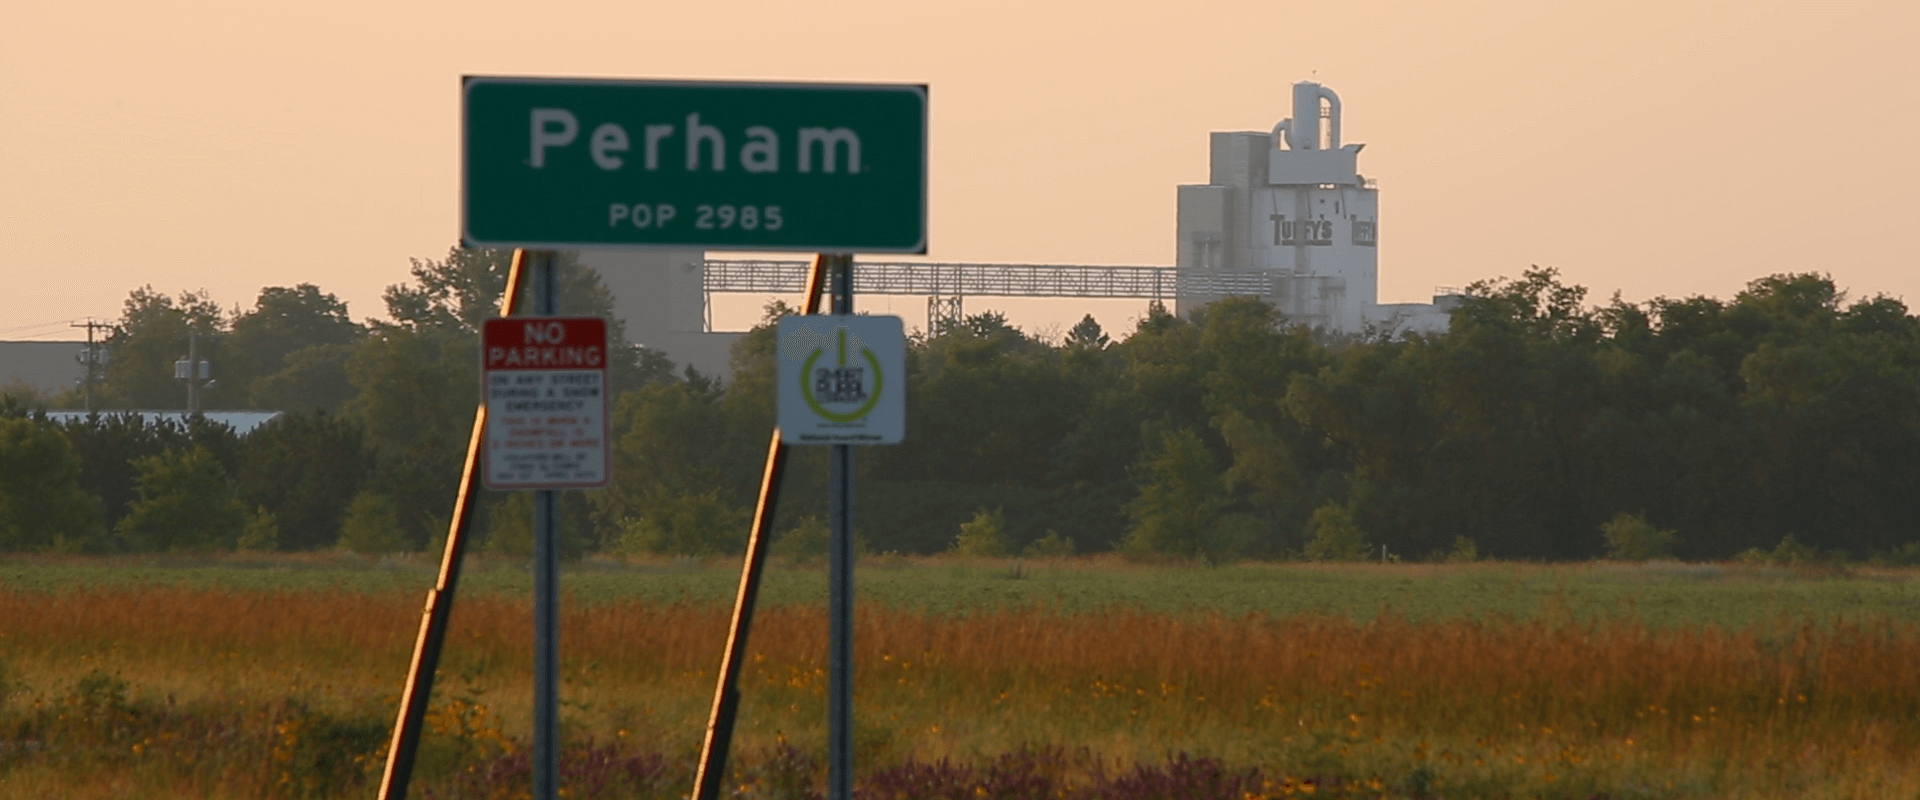 Perham is our Home